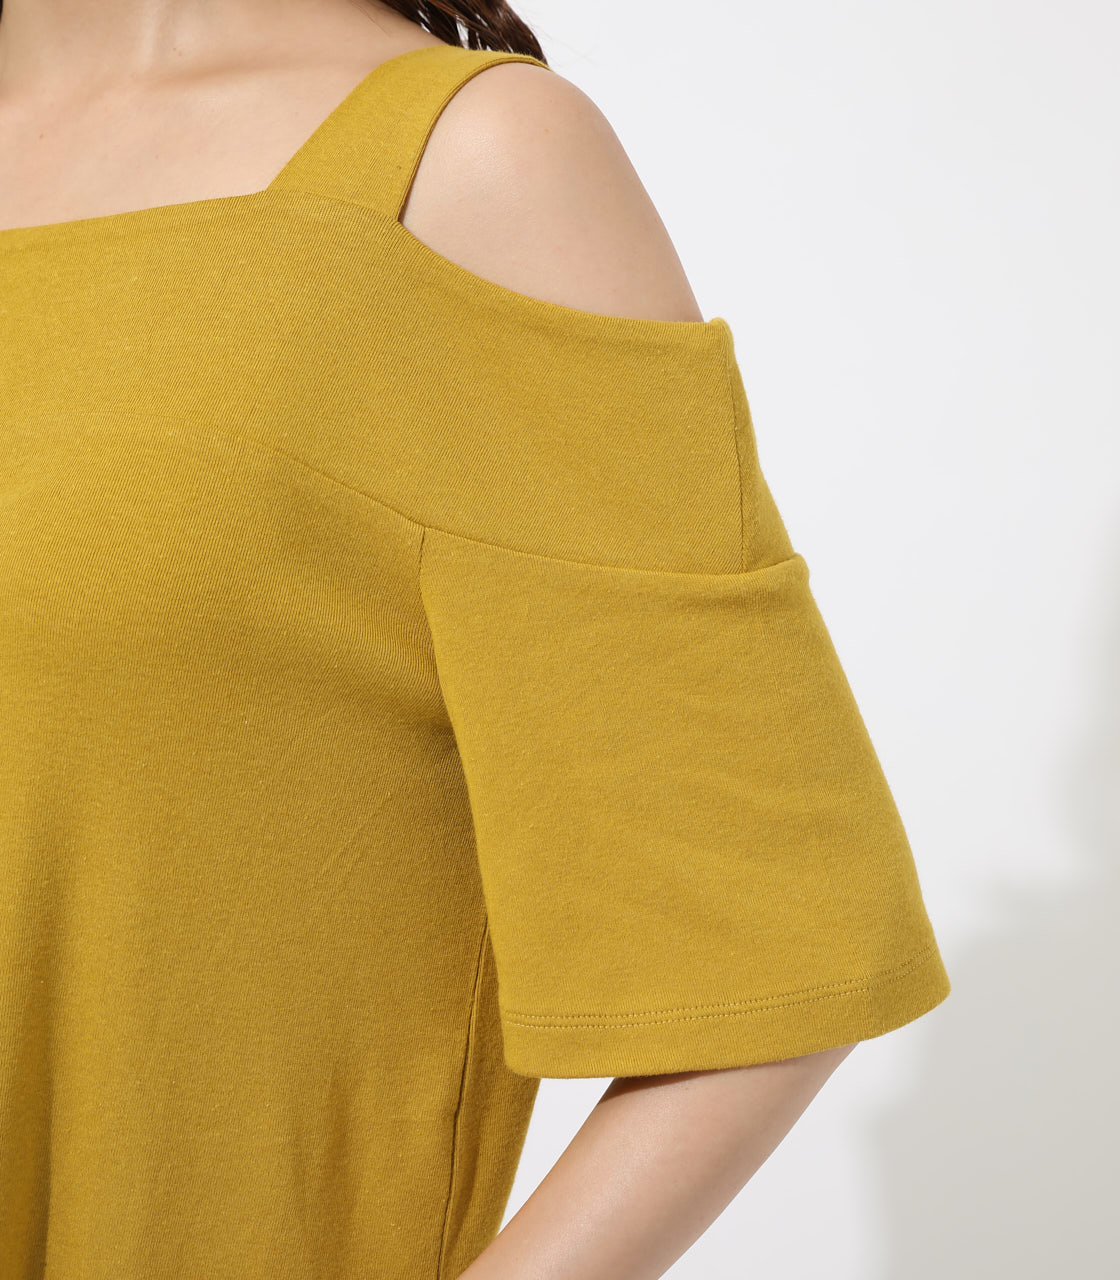 WIDE STRAP OPEN SHOULDER TOPS 詳細画像 D/YEL 8